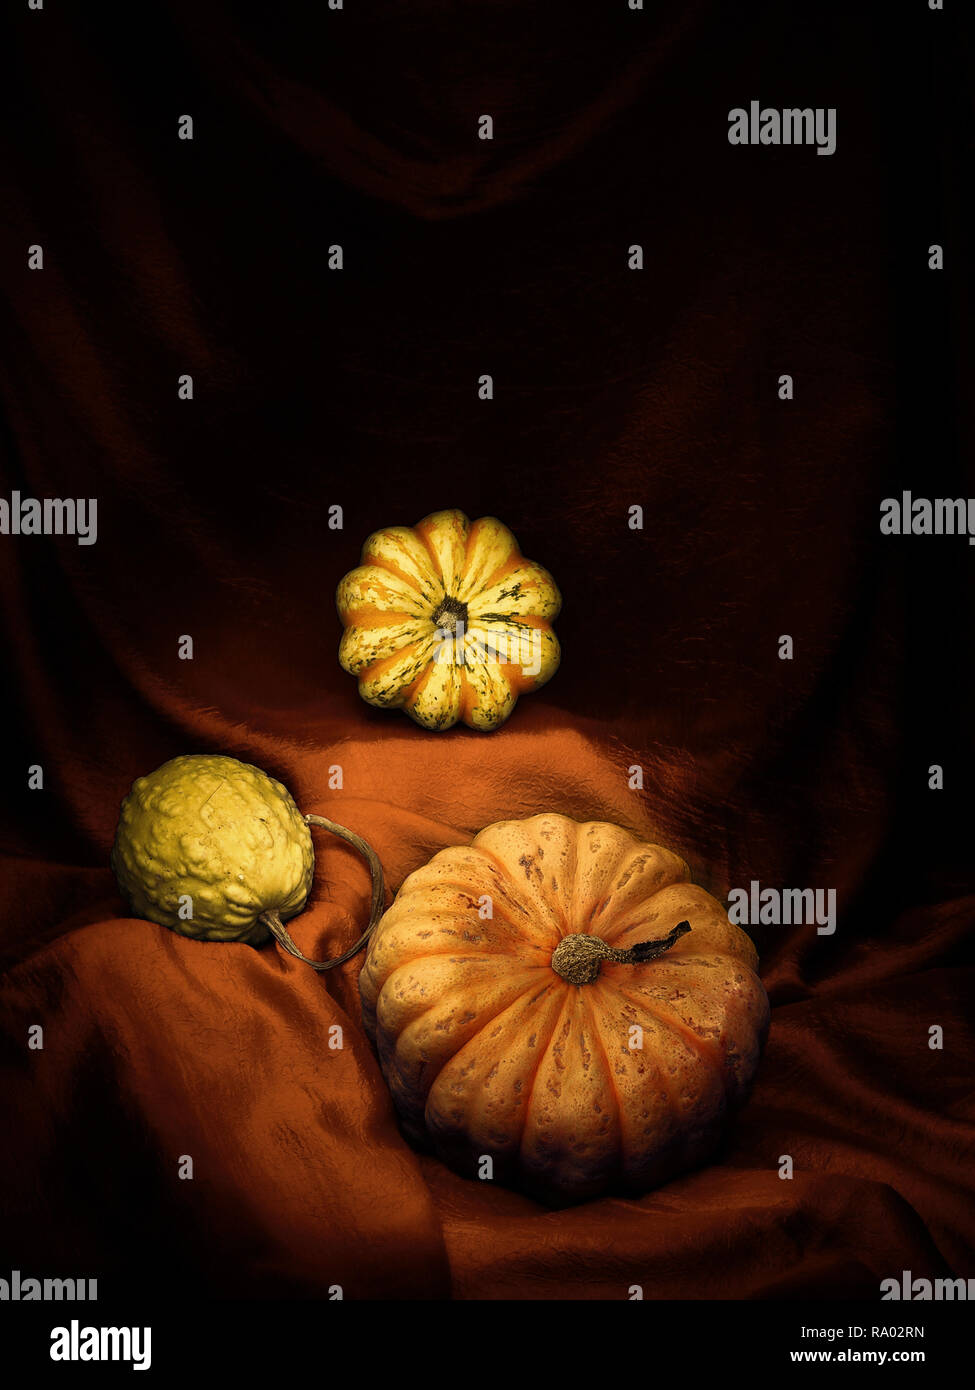 An arrangement of edible and ornamental winter squashes, pumpkins, on draped fabric. Light painting still life. Vertical. - Stock Image